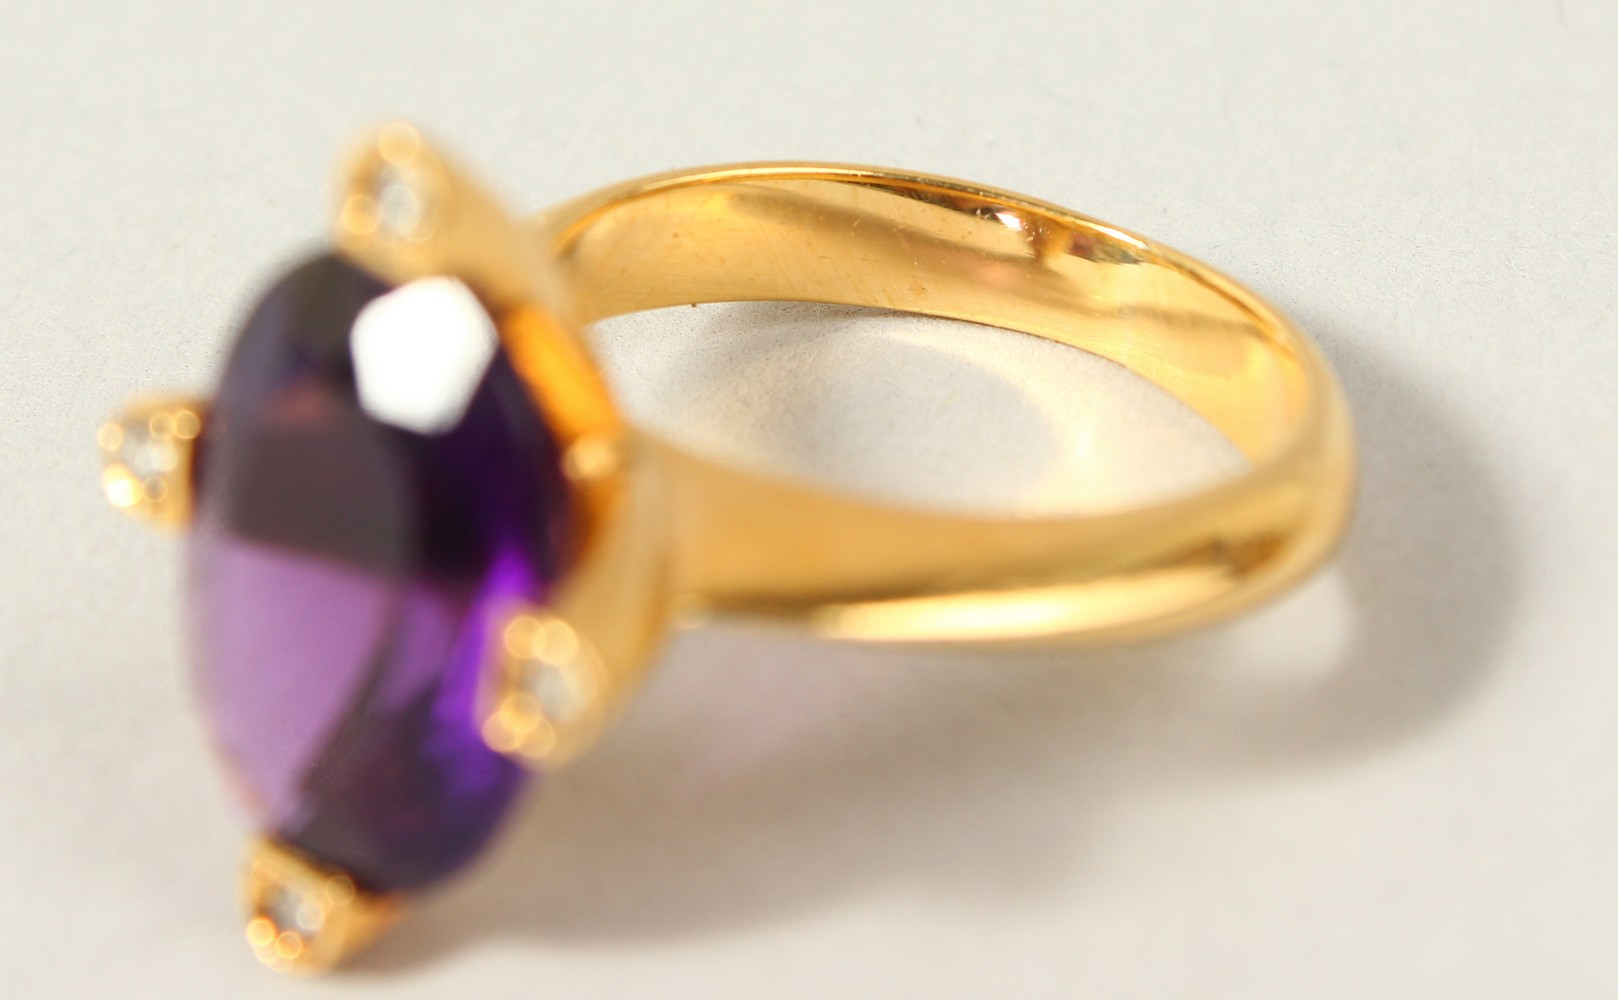 Lot 1743 - A 14K GOLD, AMETHYST AND DIAMOND RING.